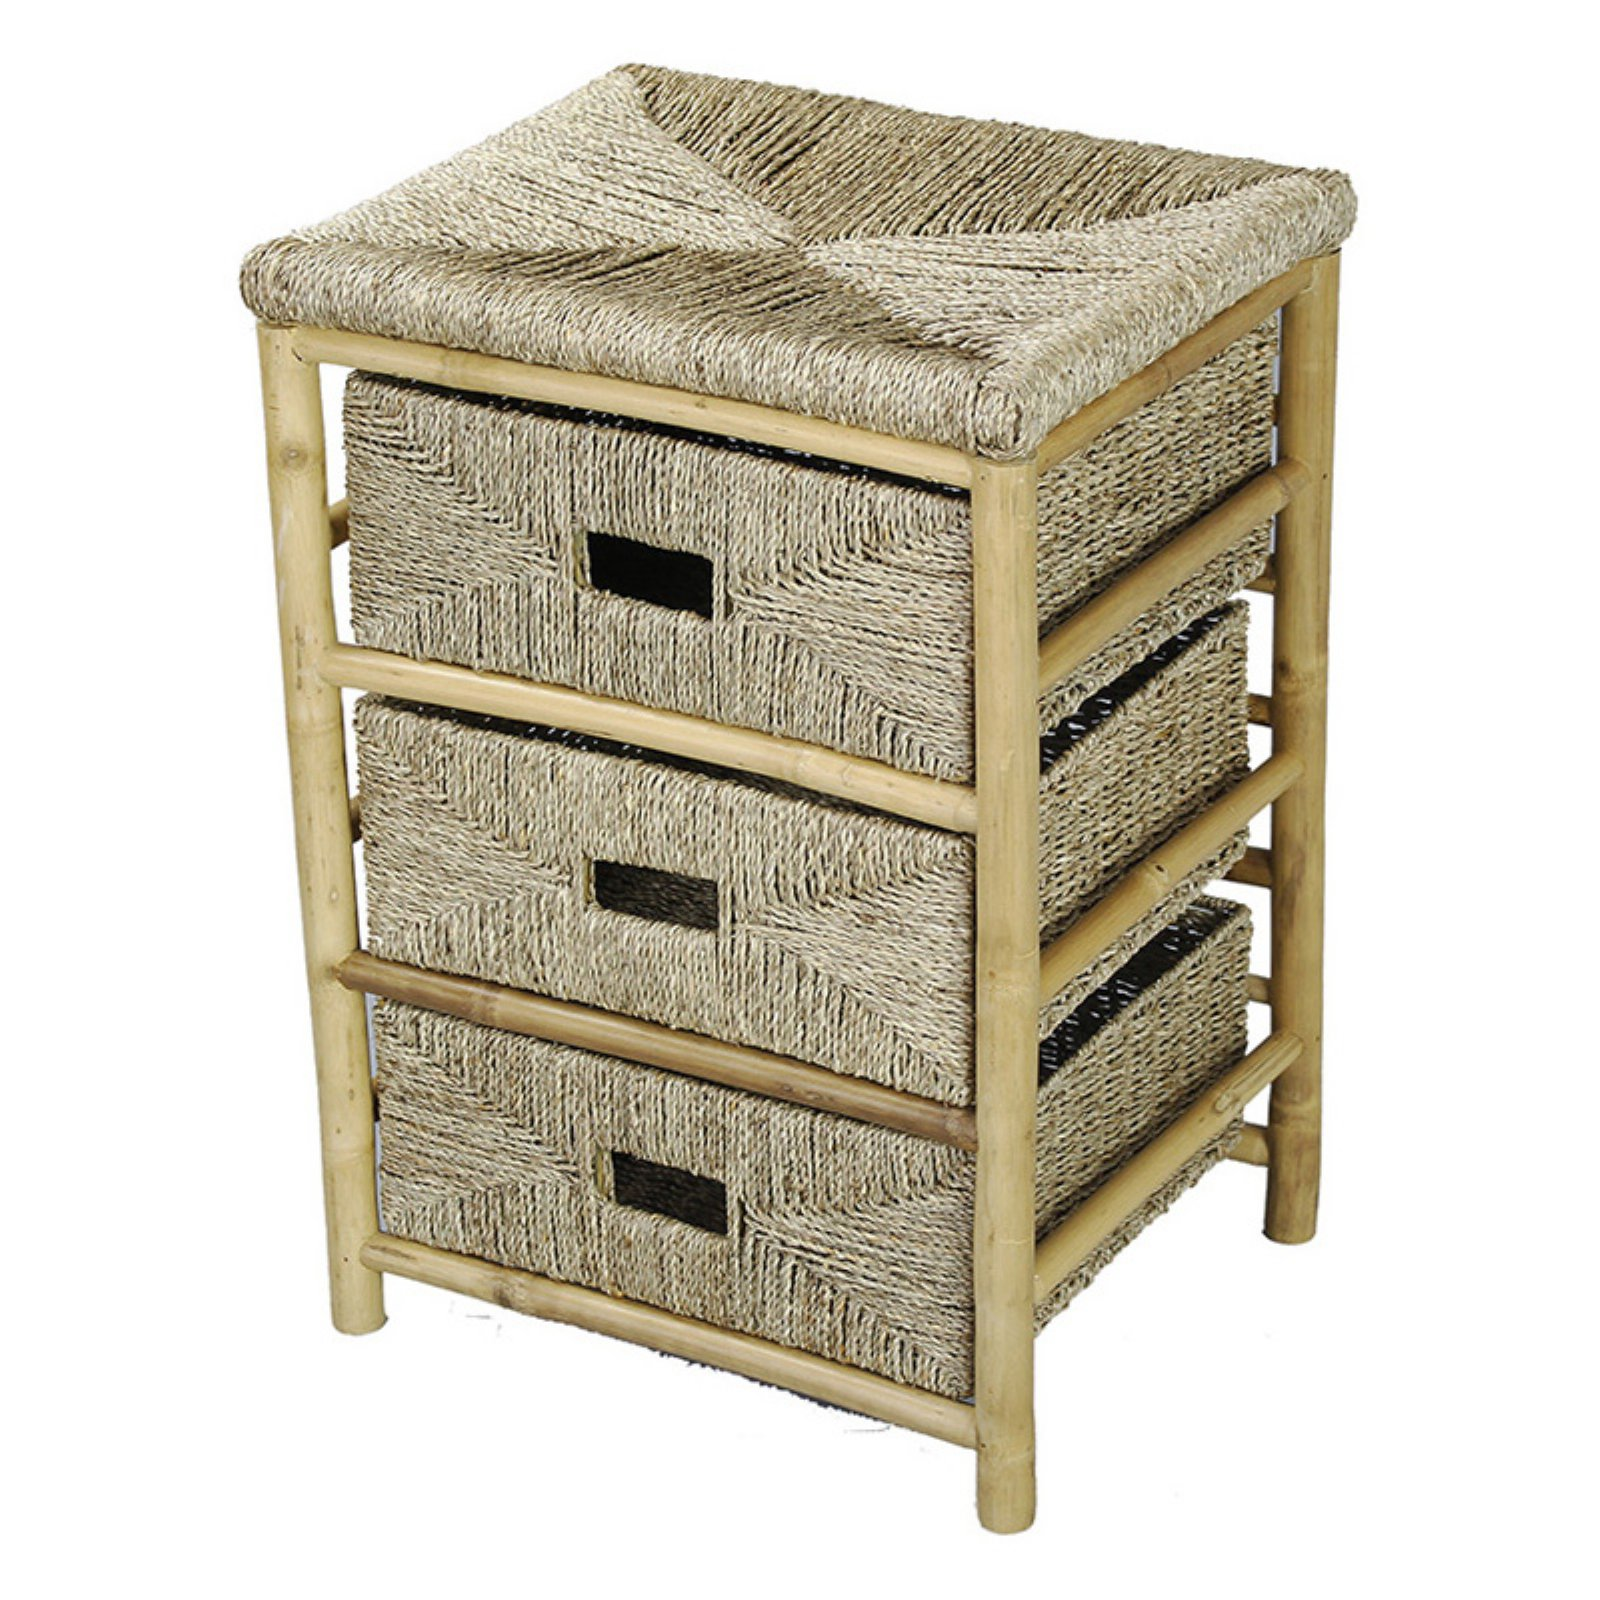 Heather Ann Creations Kaleo 3 Drawer Bamboo and Seagrass Open Frame Storage Cabinet